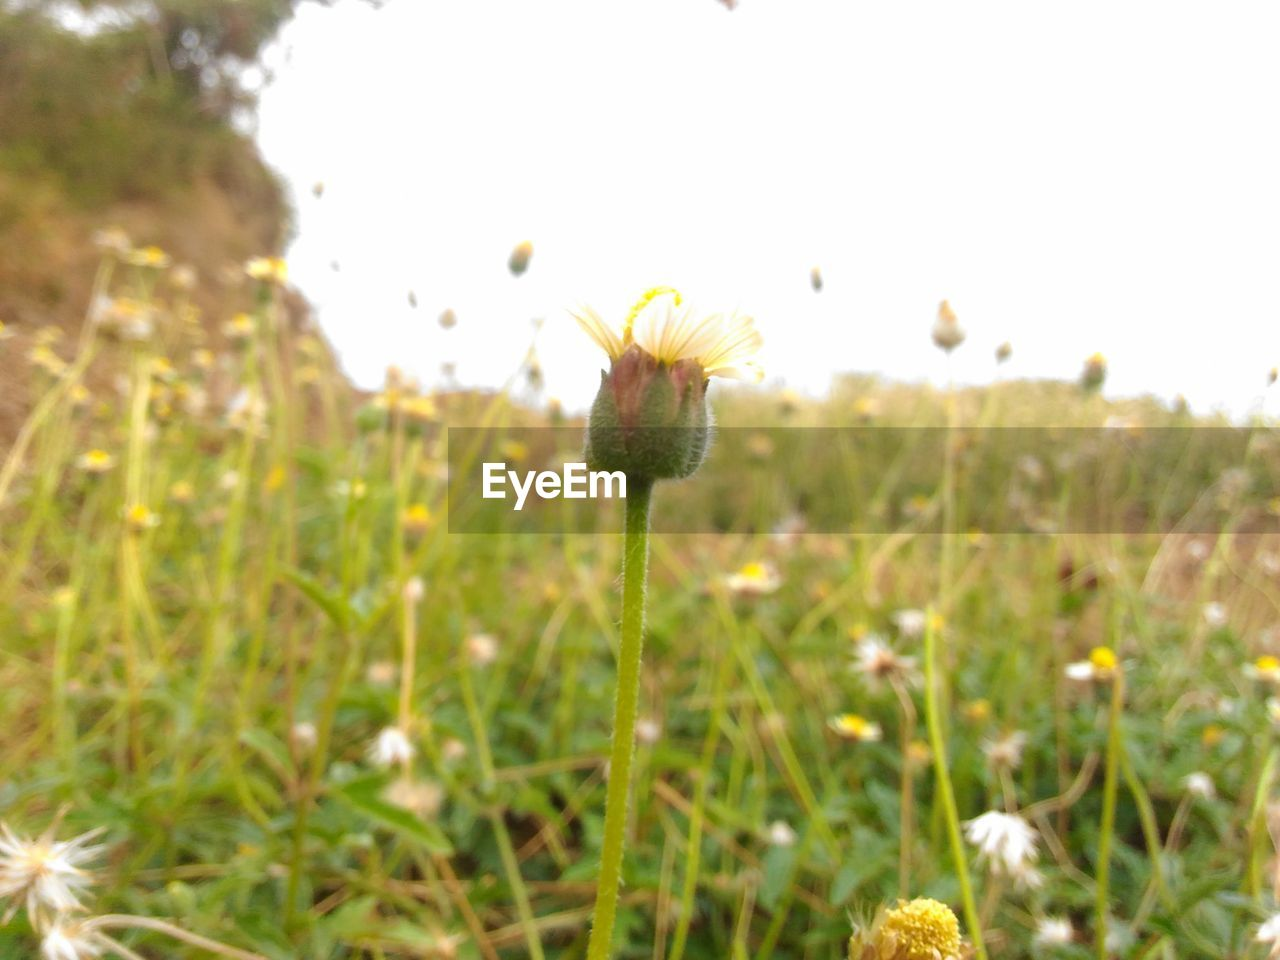 flower, nature, growth, plant, fragility, field, freshness, beauty in nature, petal, outdoors, selective focus, no people, day, close-up, flower head, grass, focus on foreground, yellow, animal themes, blooming, sky